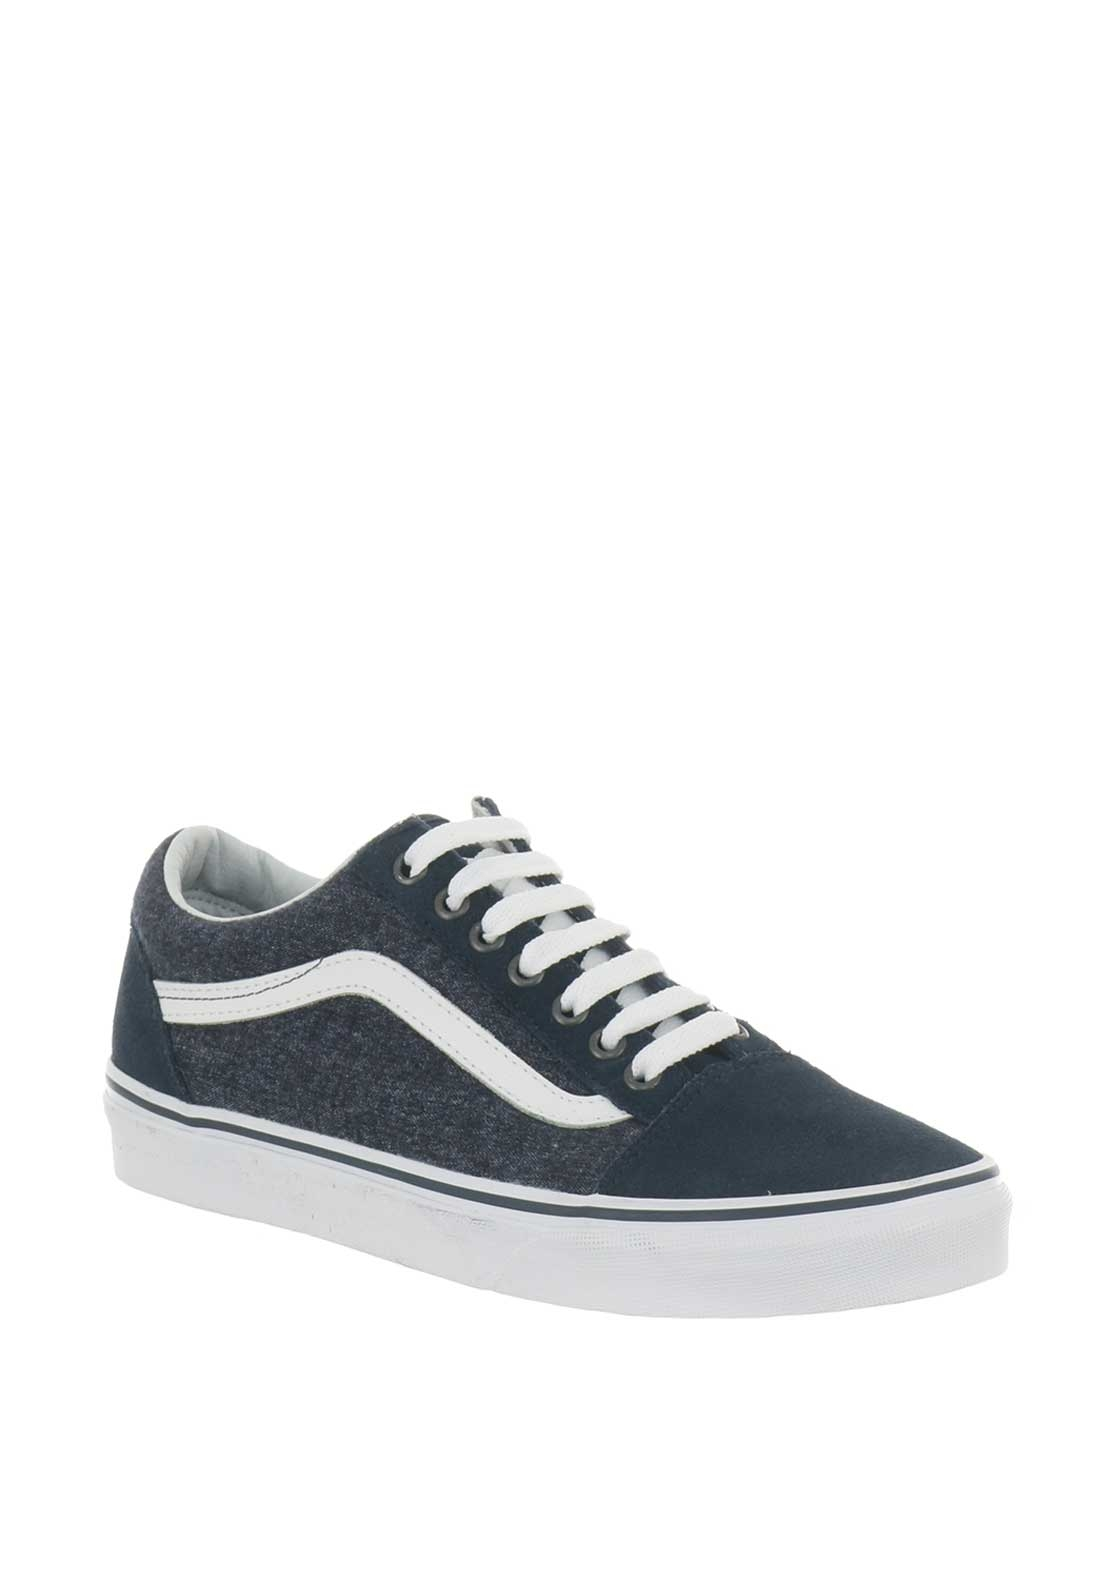 Vans Men's Old School Suede Trainers, Navy